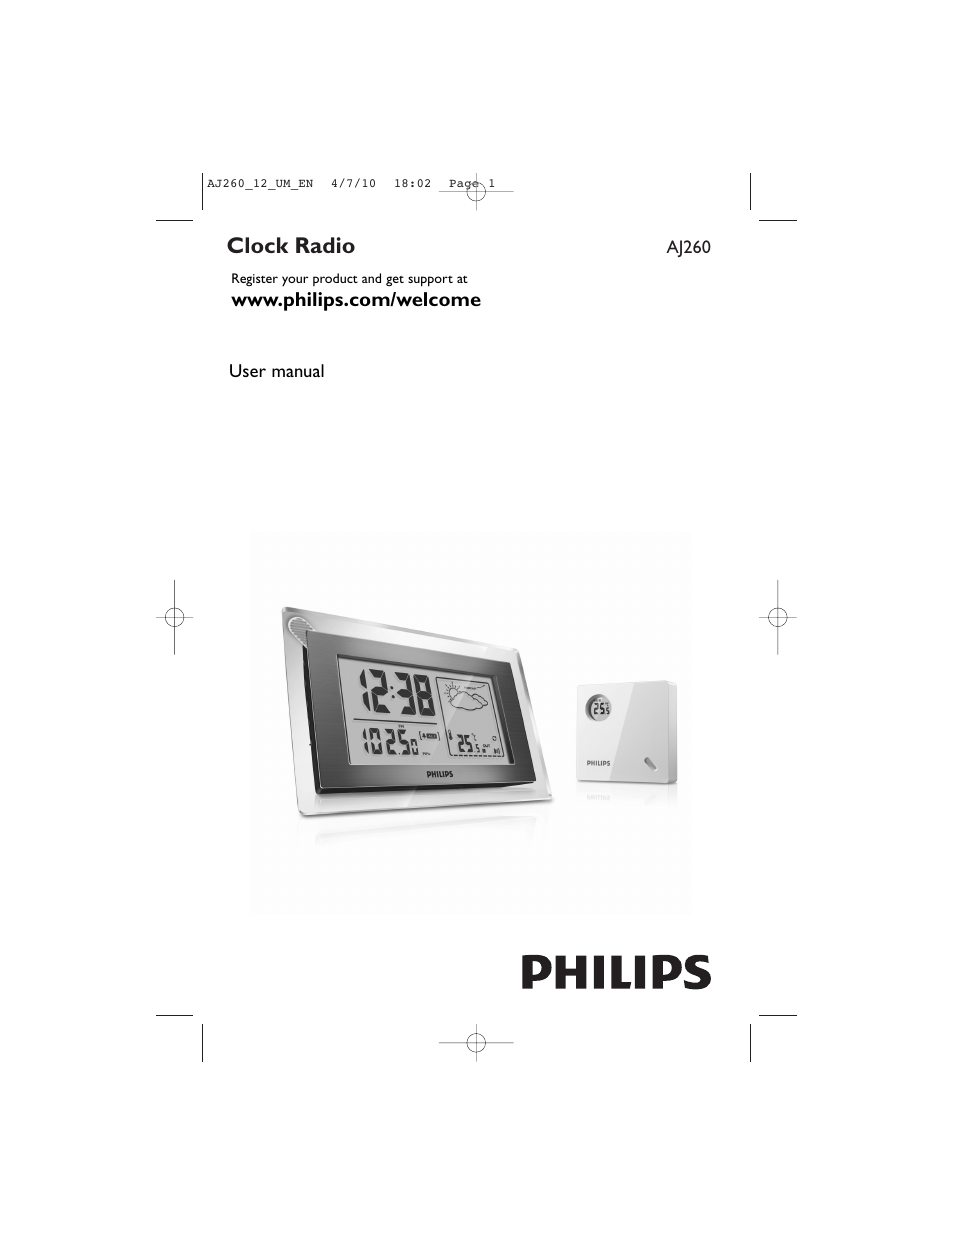 philips aj260 12 user manual 11 pages also for waj260 rh manualsdir com Philips Universal Remote User Manual Philips TV Manual